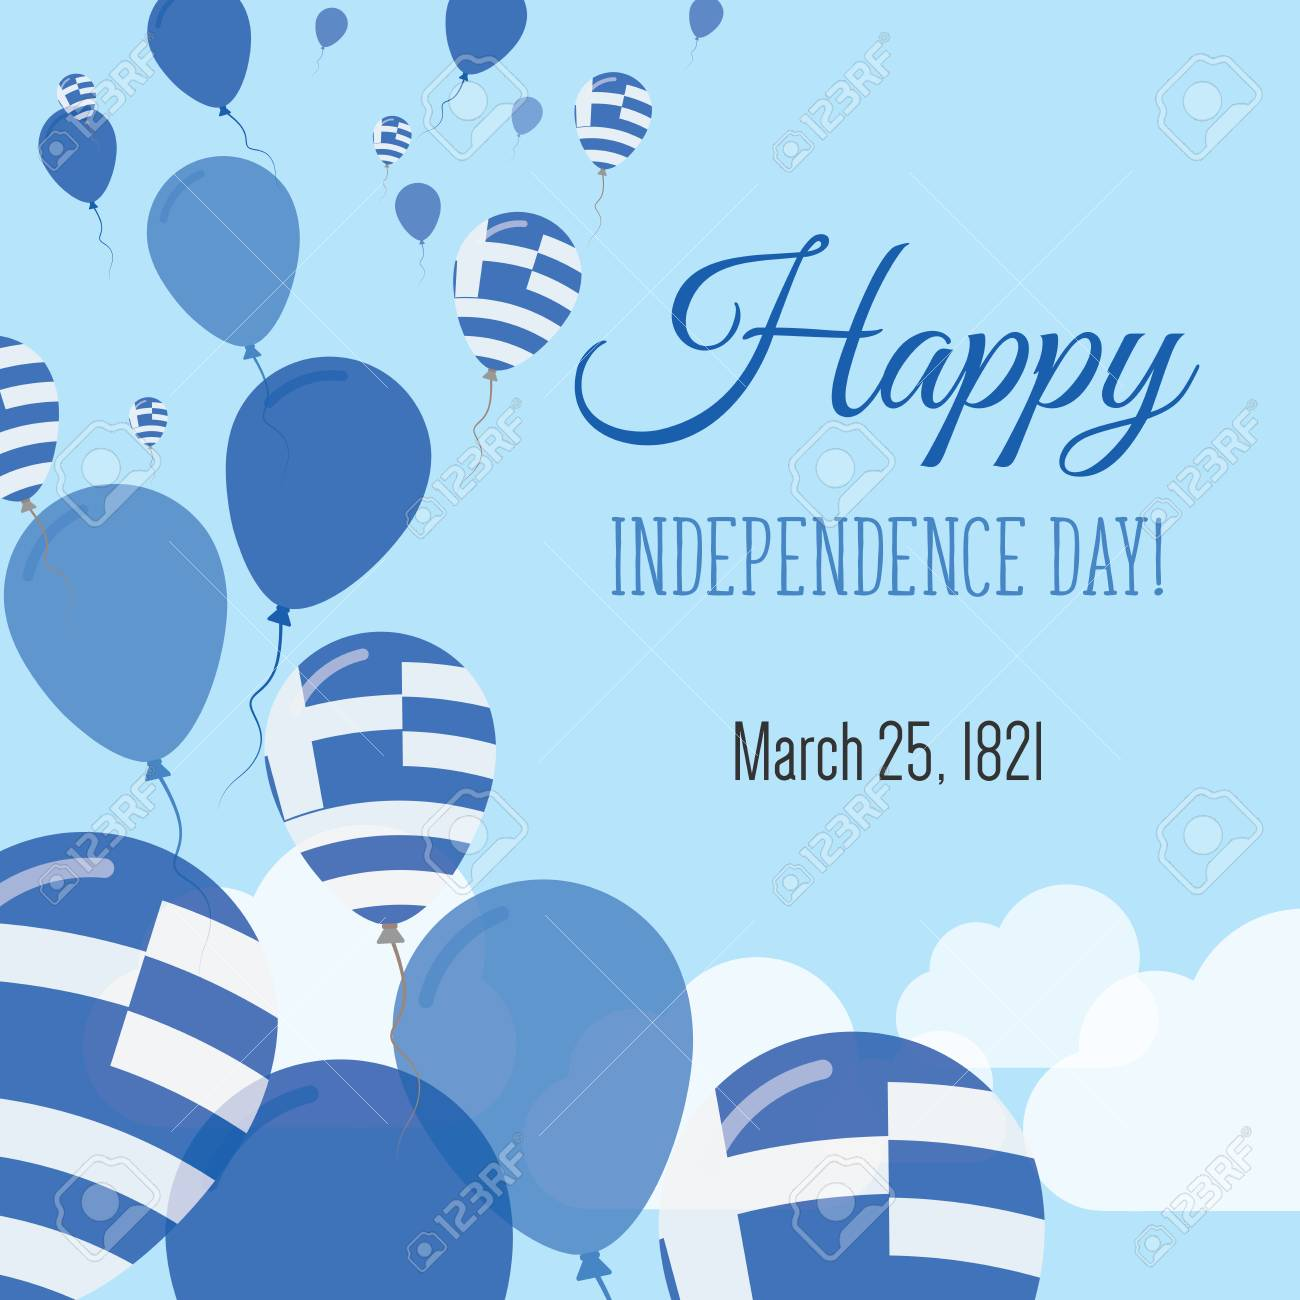 Independence day flat greeting card greece independence day independence day flat greeting card greece independence day greek flag balloons patriotic poster m4hsunfo